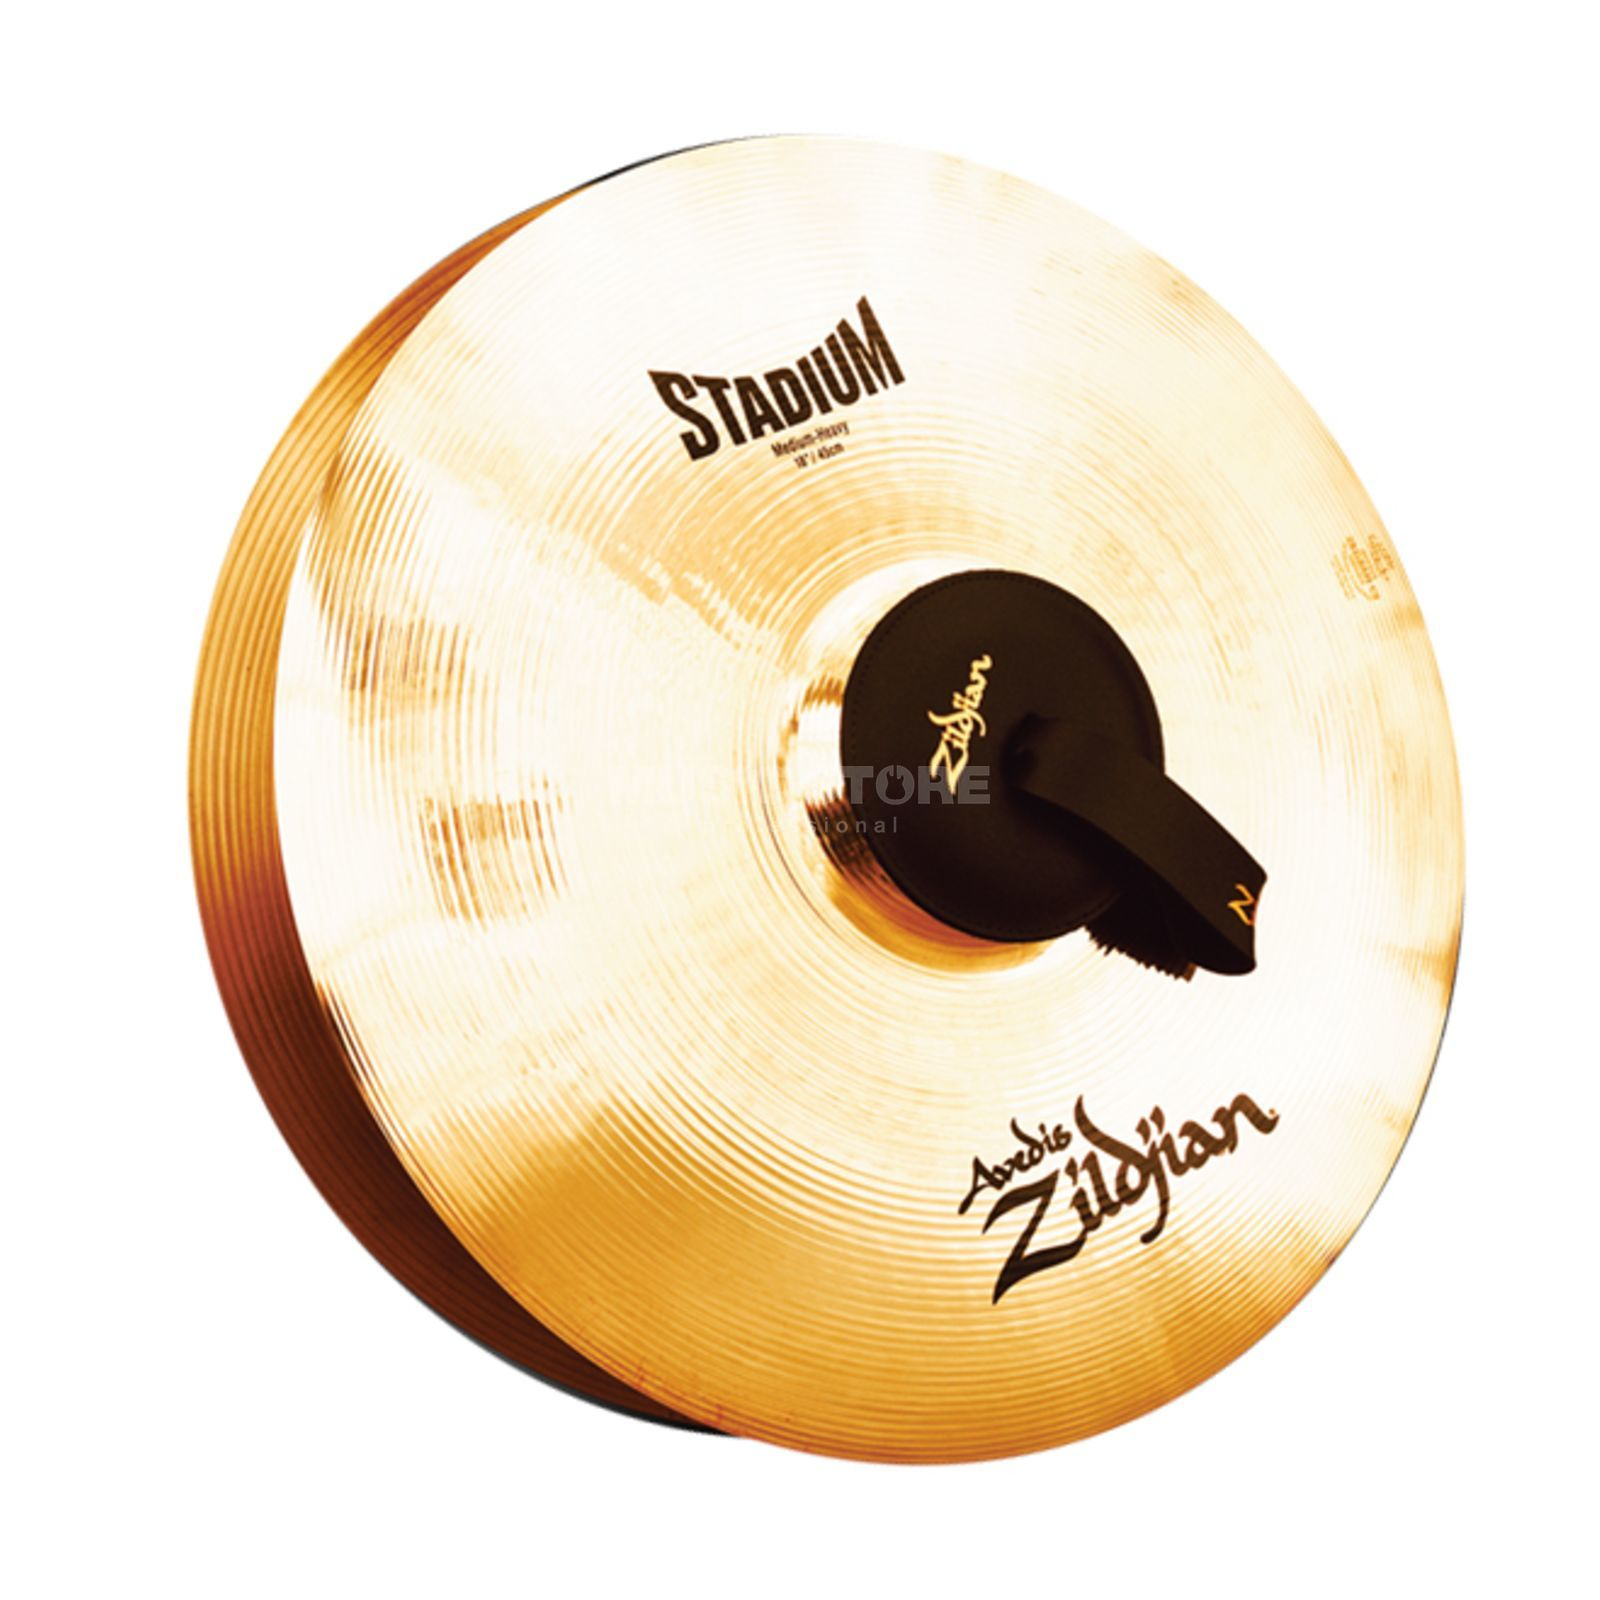 "Zildjian A' Stadium Marching Cymbals, 18"", Medium Heavy Produktbild"